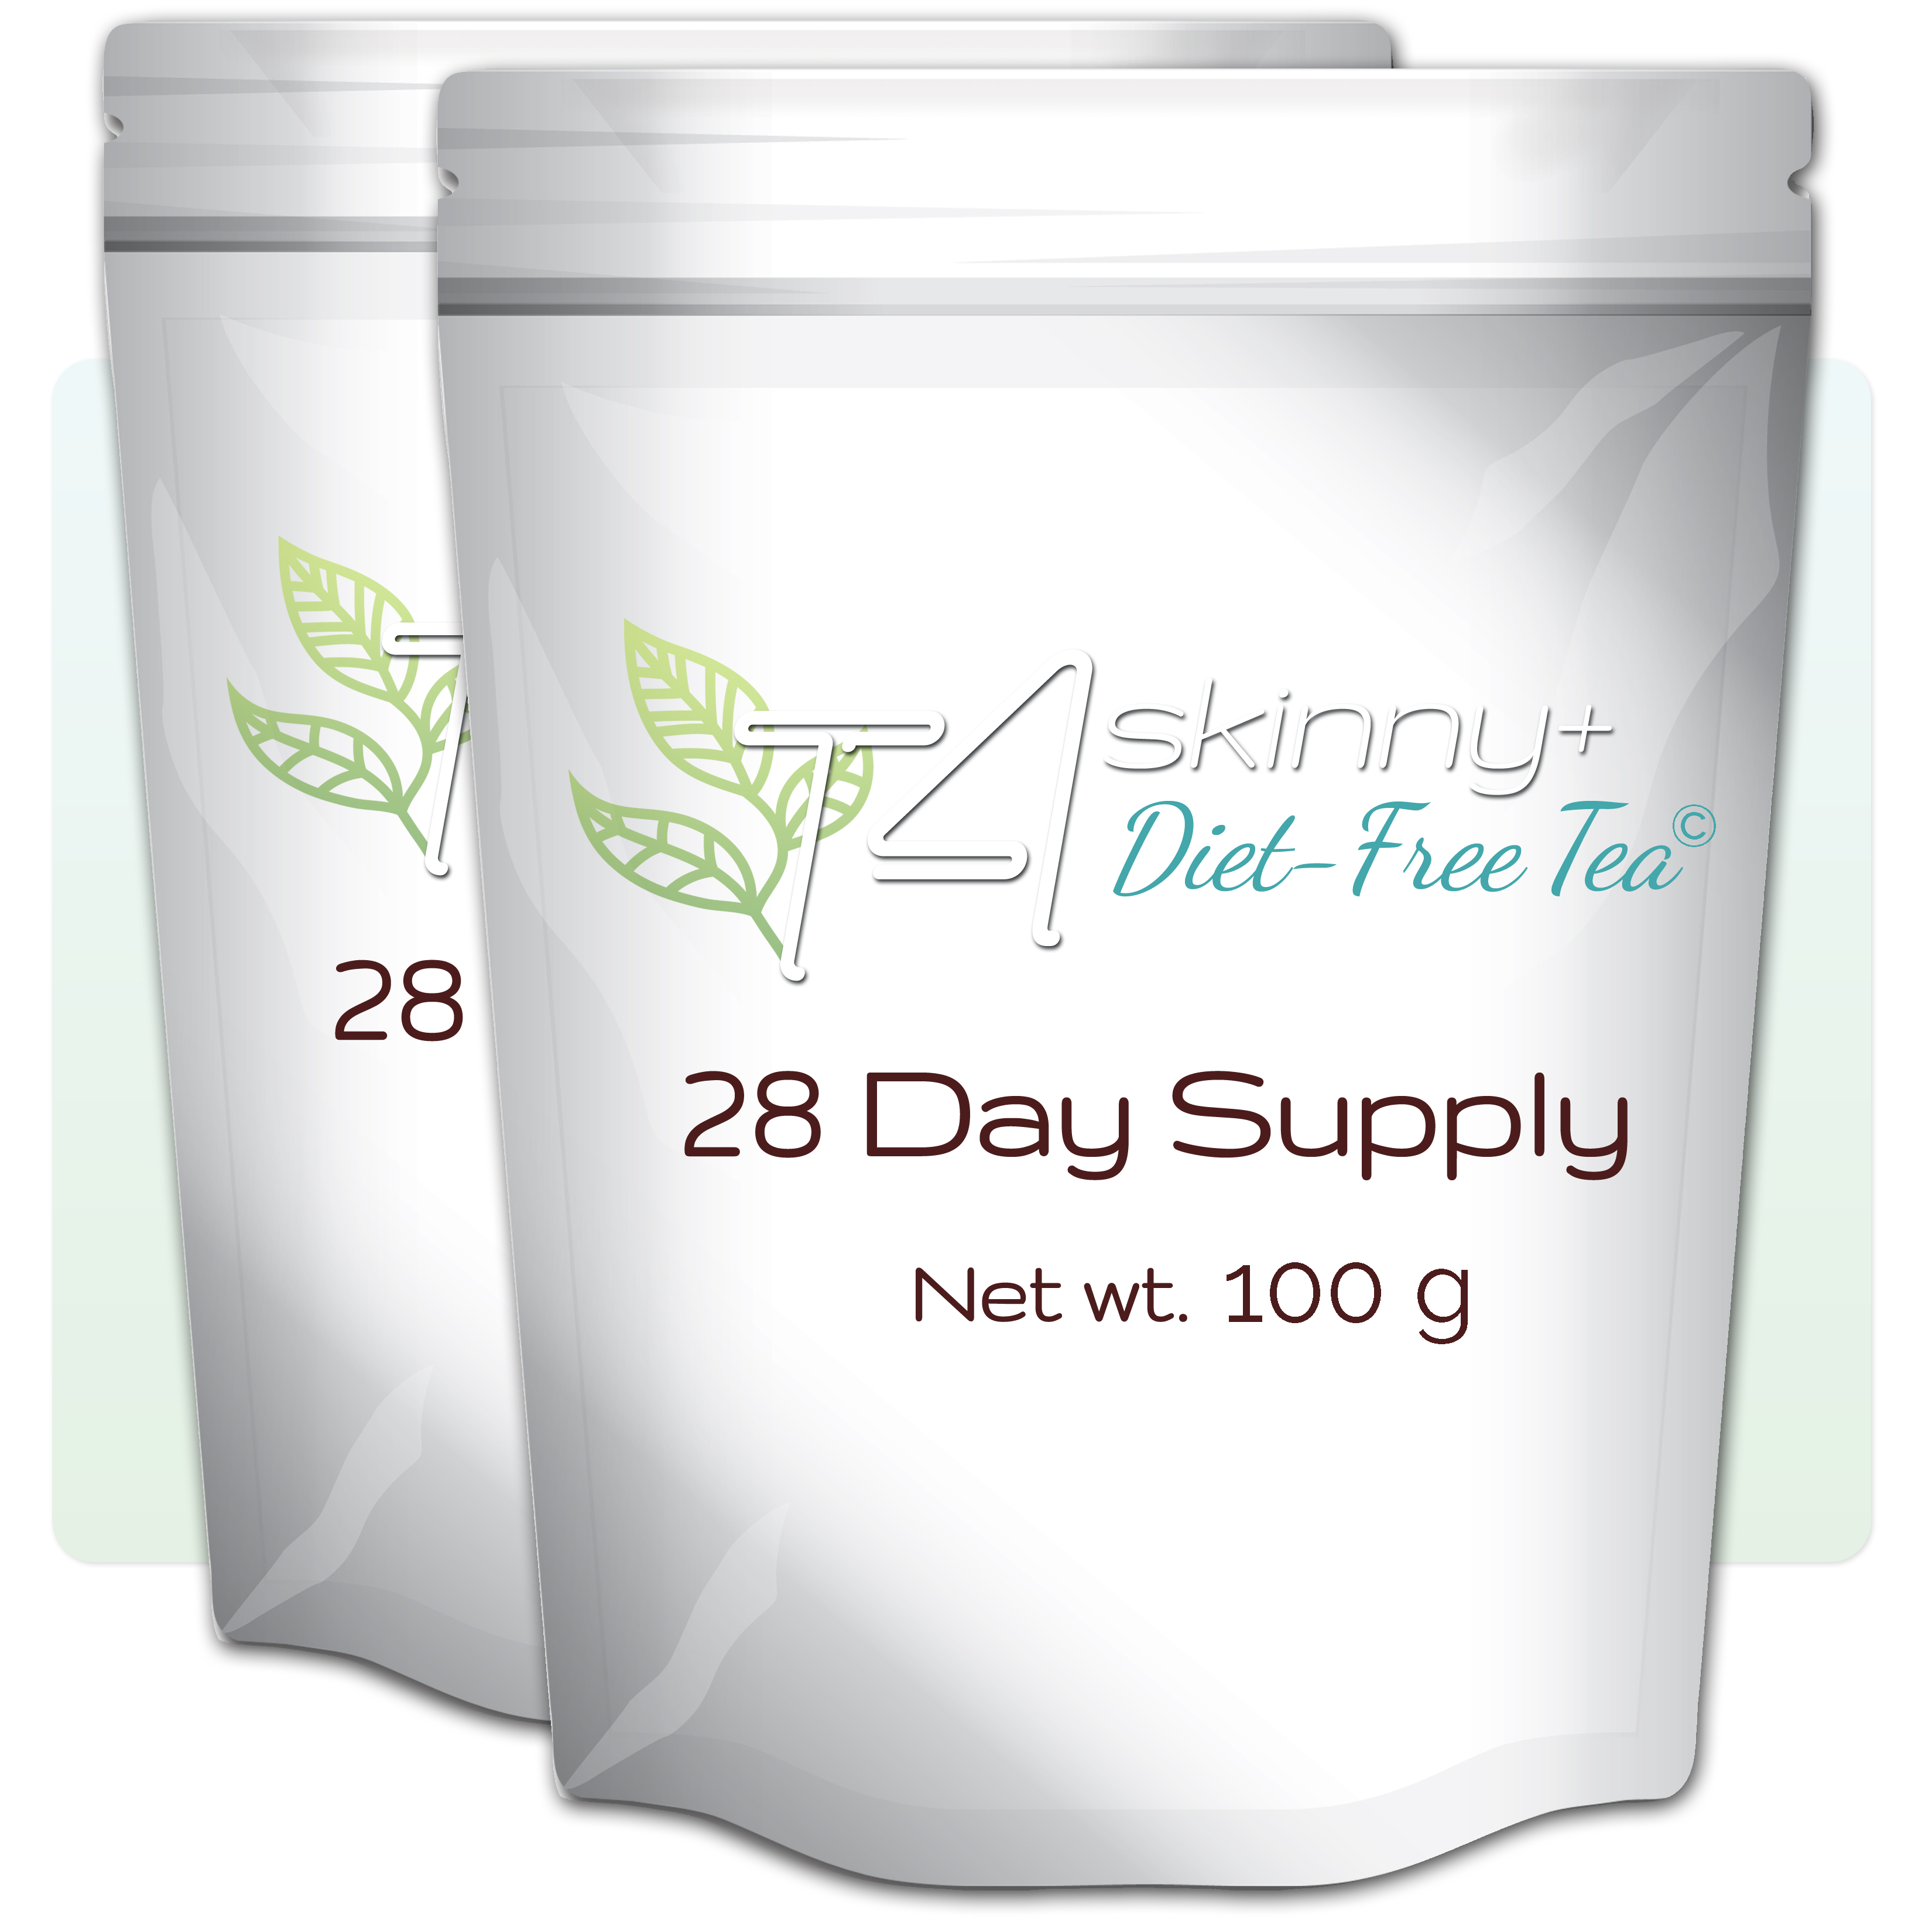 healthy weight loss and detox superfood and detox tea t4 skinny diet free tea 2 x 28 day. Black Bedroom Furniture Sets. Home Design Ideas